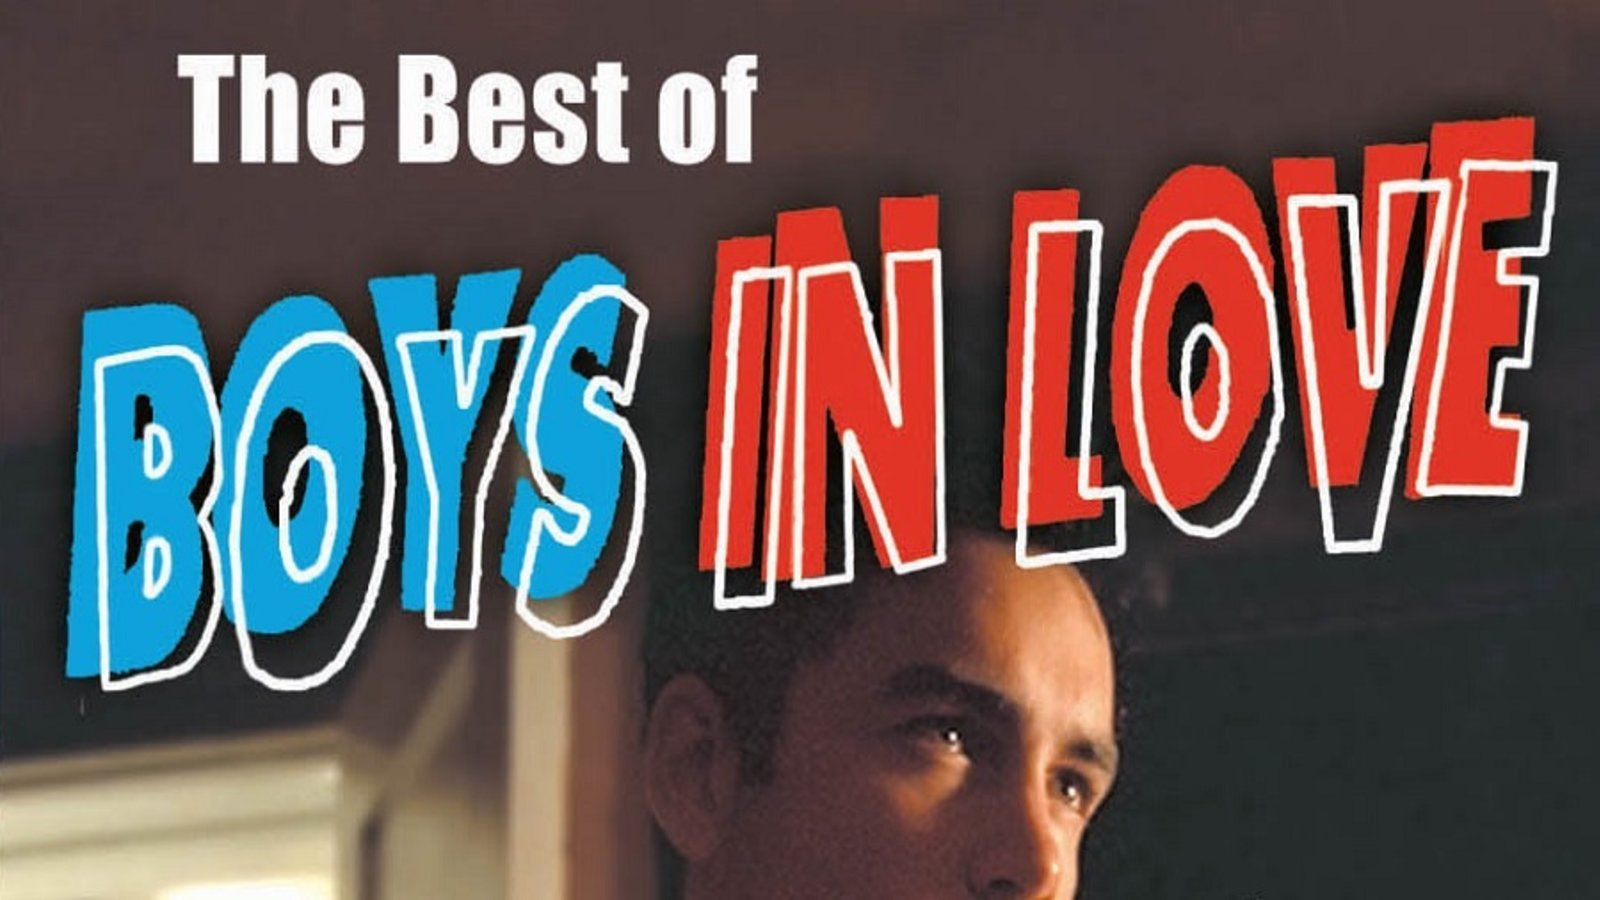 The Best of Boys in Love - Seven Award-Winning LGBT Short Films